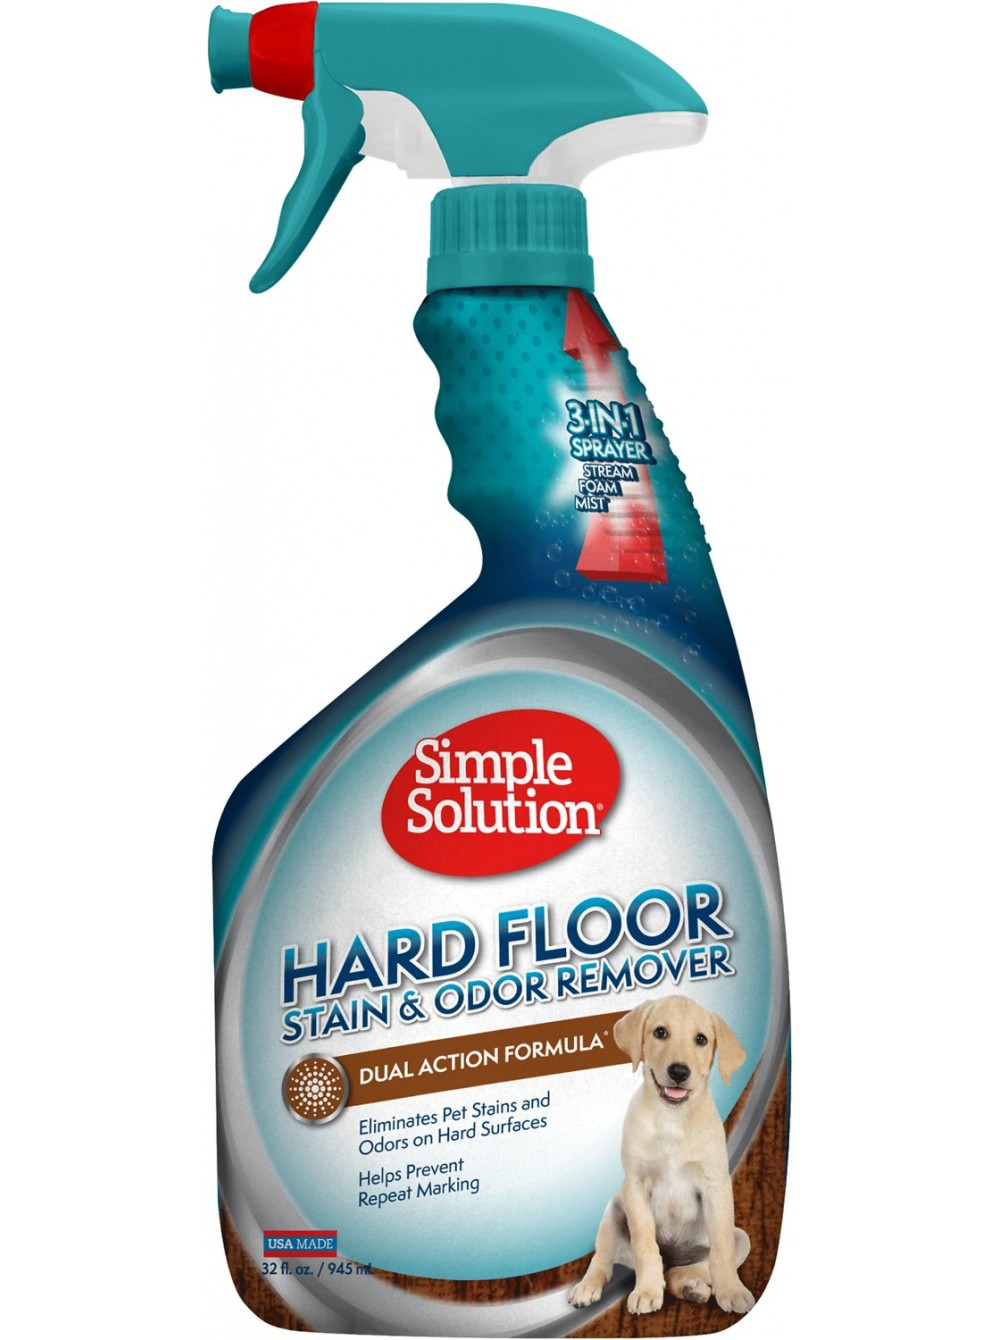 Simple Solution Hardfloors Stain And Odor Remover нейтрализатор запахов